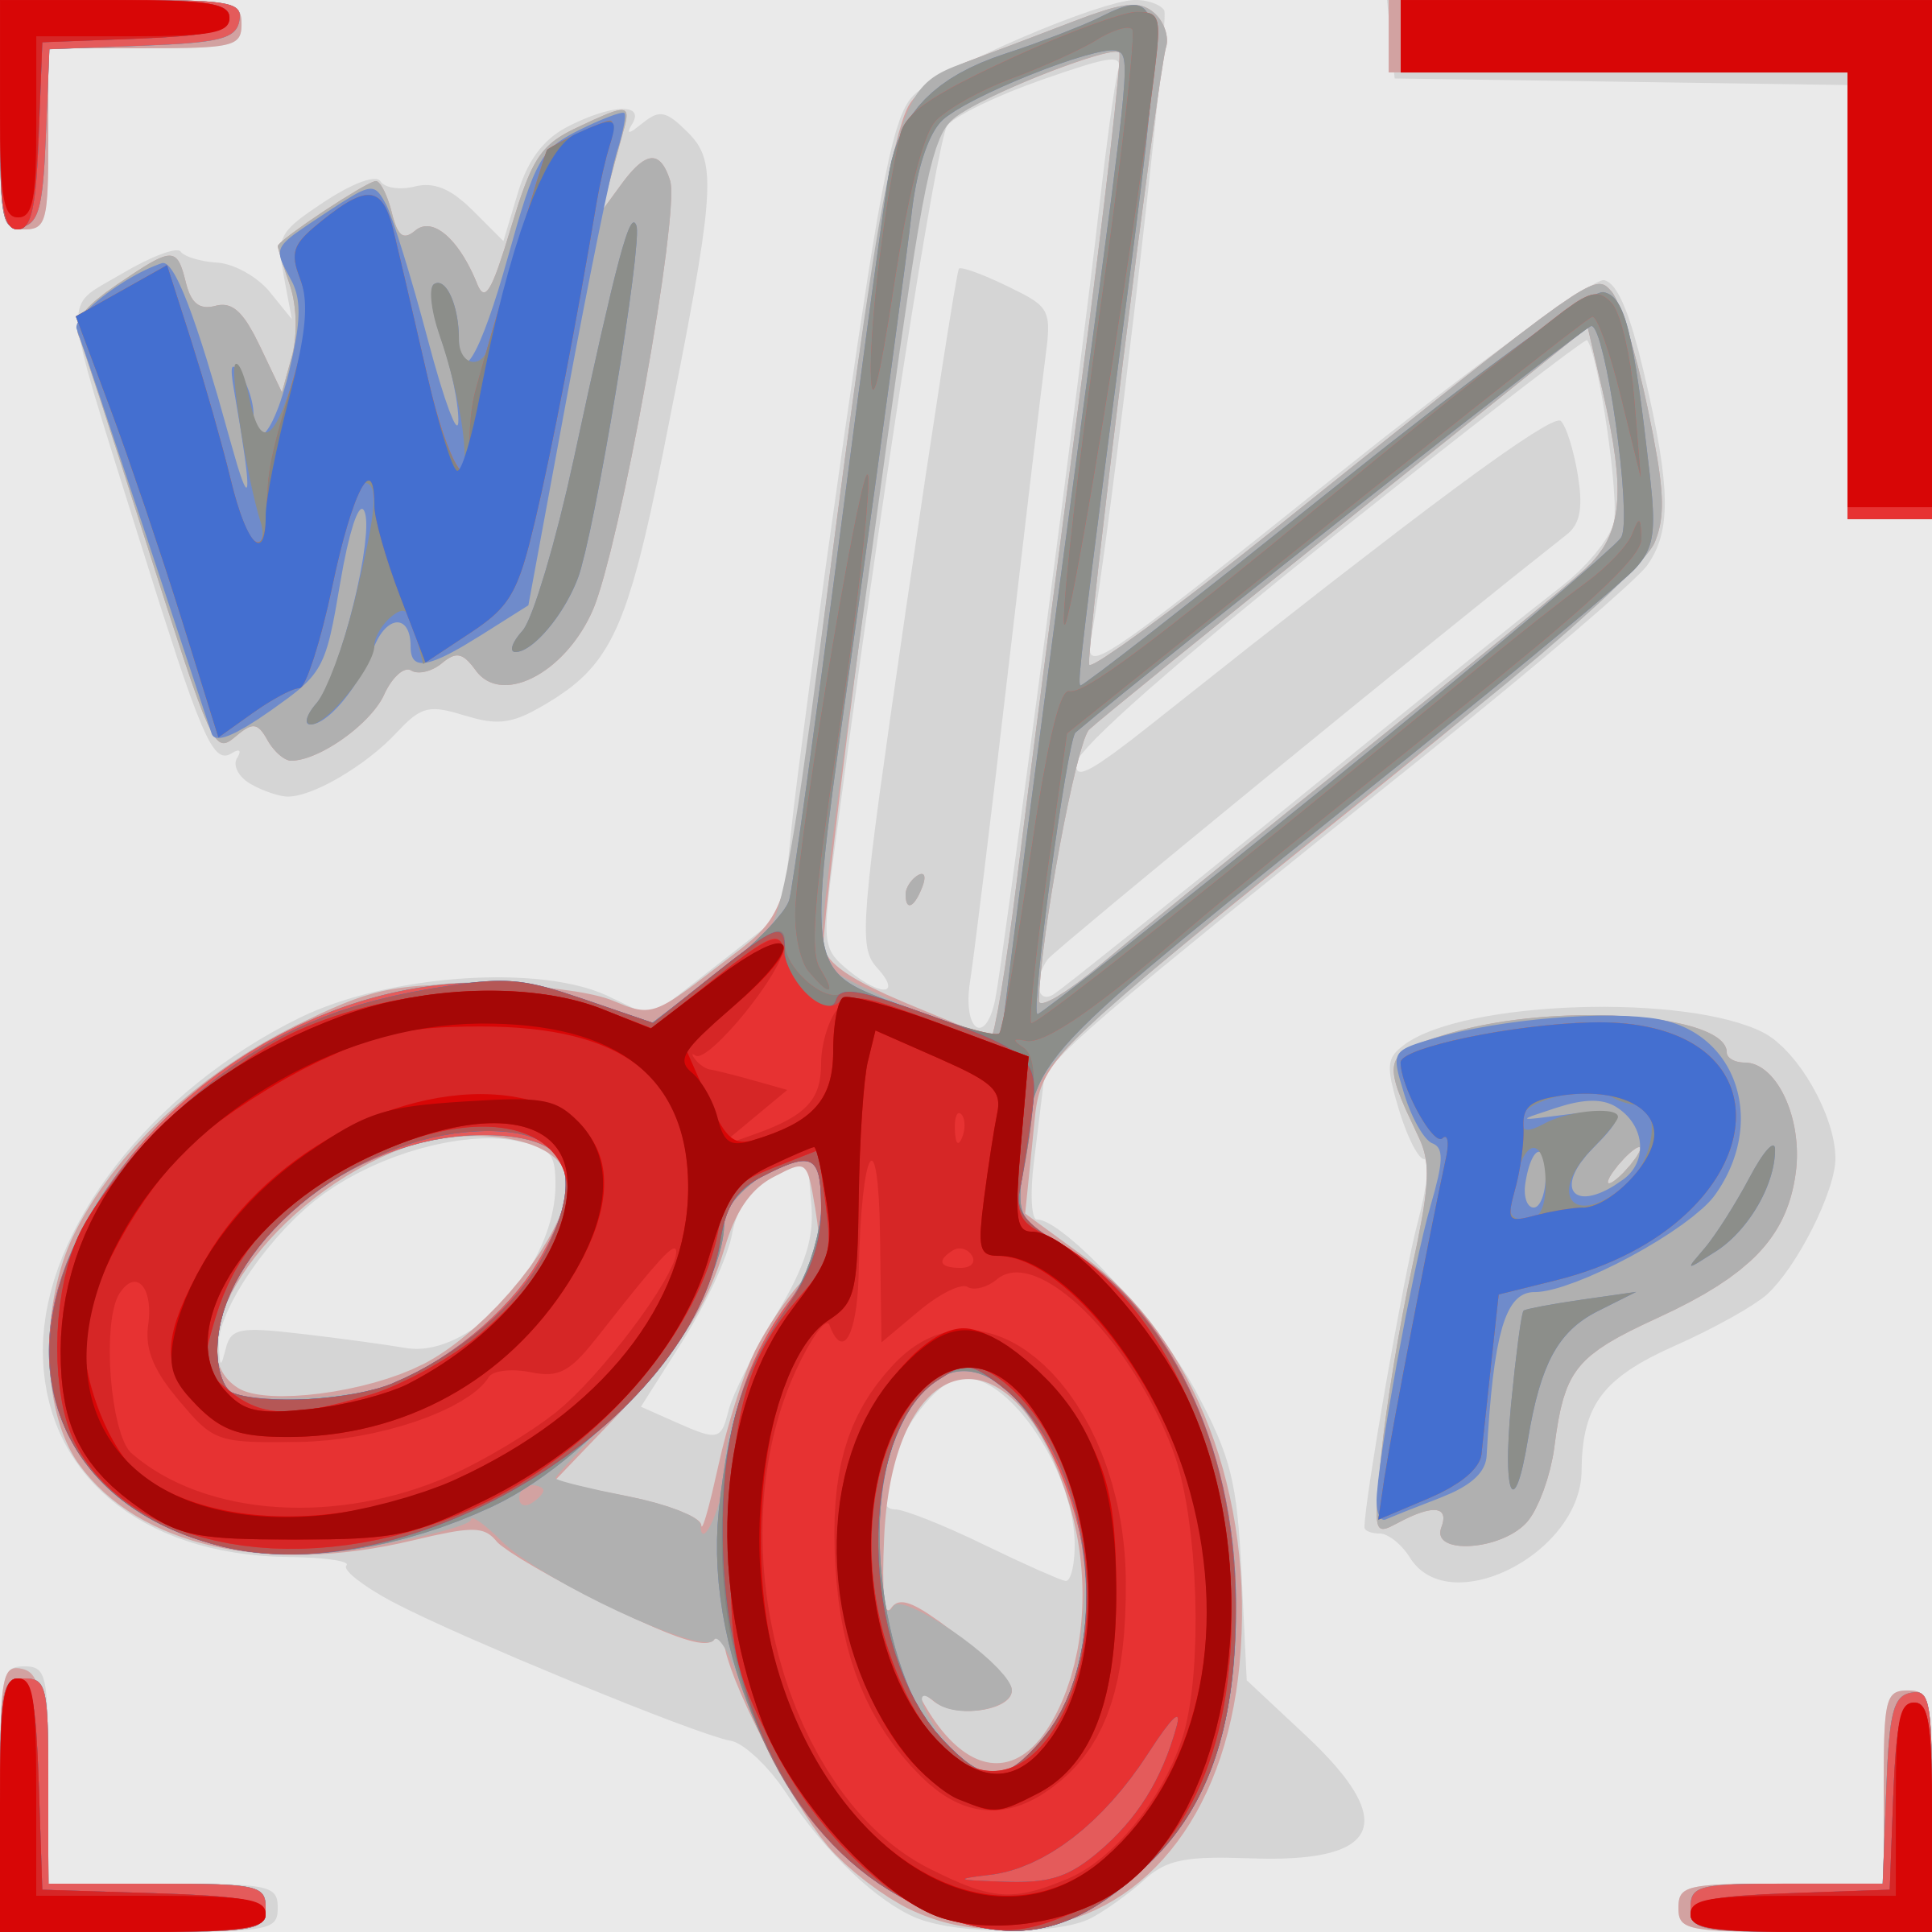 WPClipart logo by wpclipart